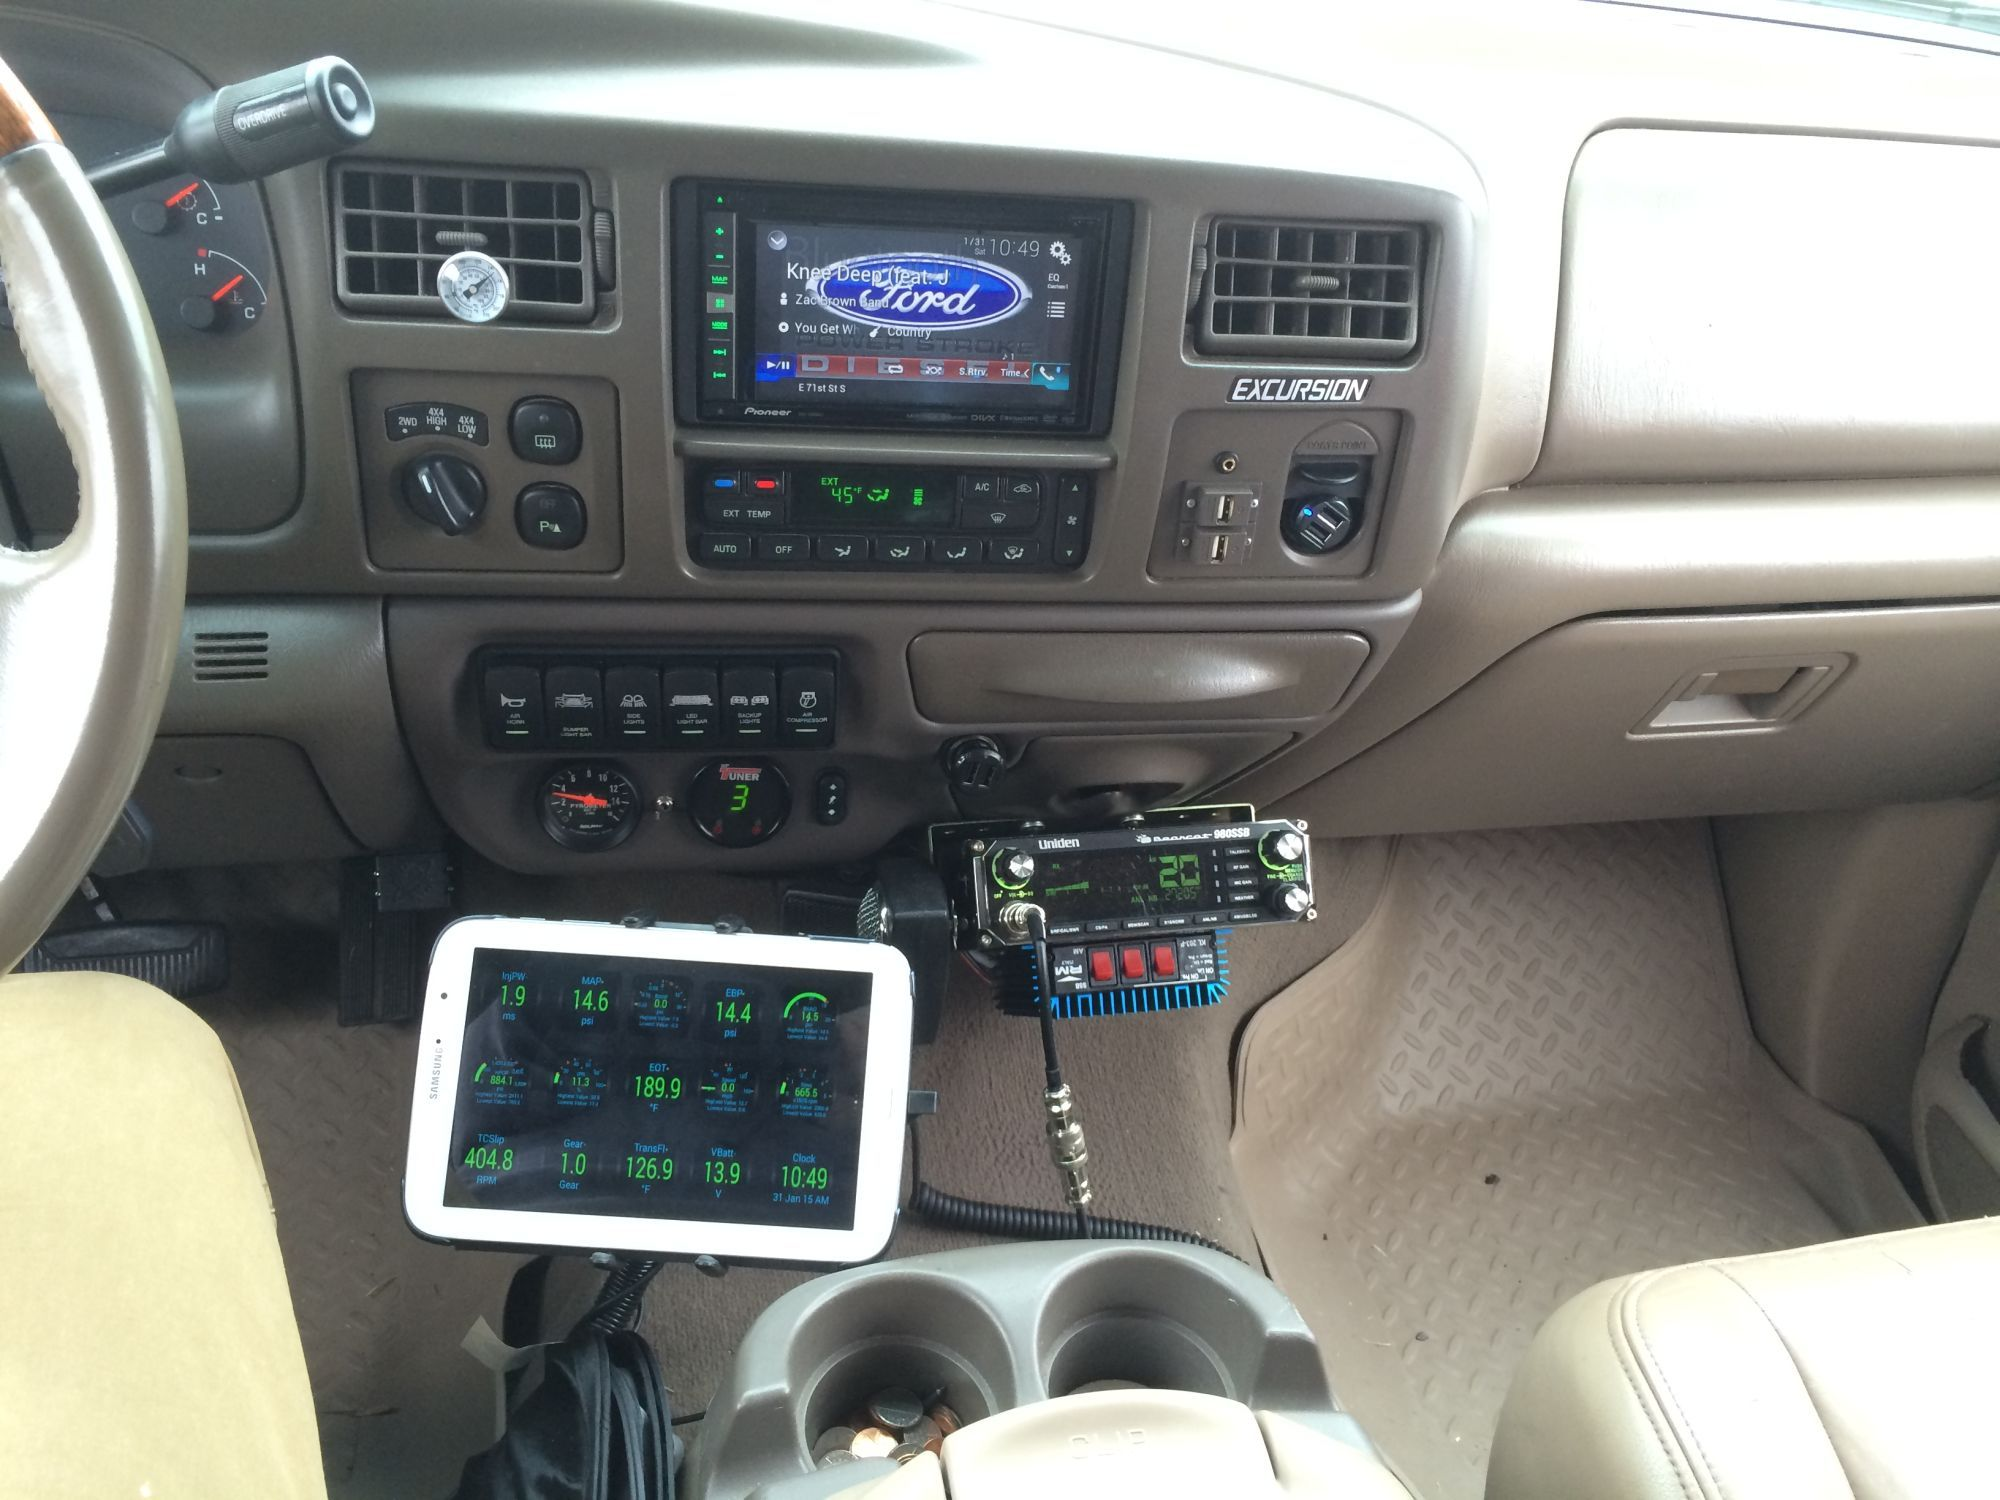 Uniden Cobra Cb Dash Mounted In A Ford Excursion Ford Excursion Ford Excursion Diesel Ford F250 Diesel